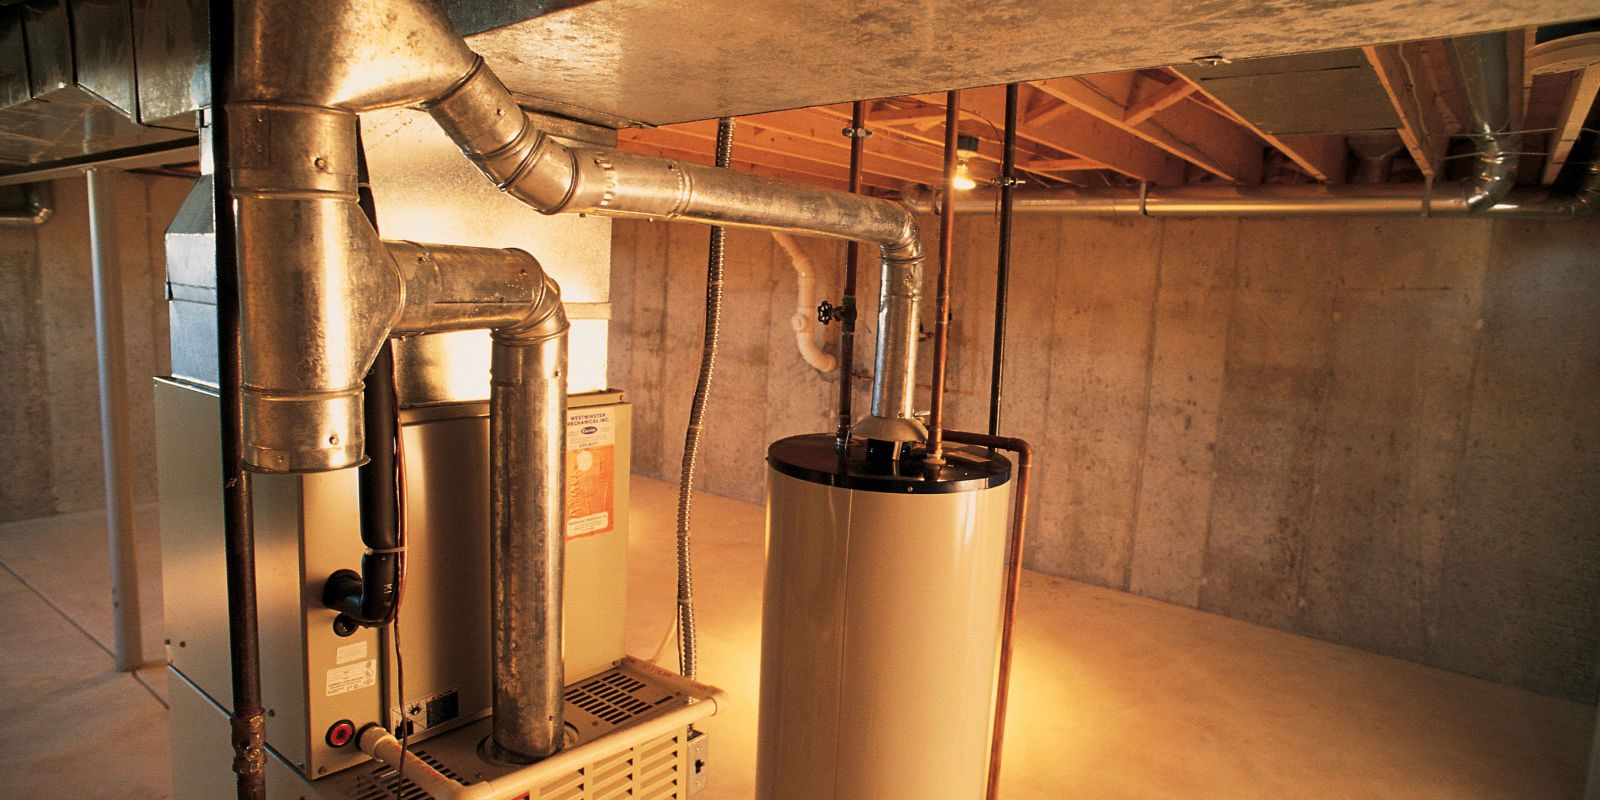 How To Double the Lifespan of Your Water Heater Basement